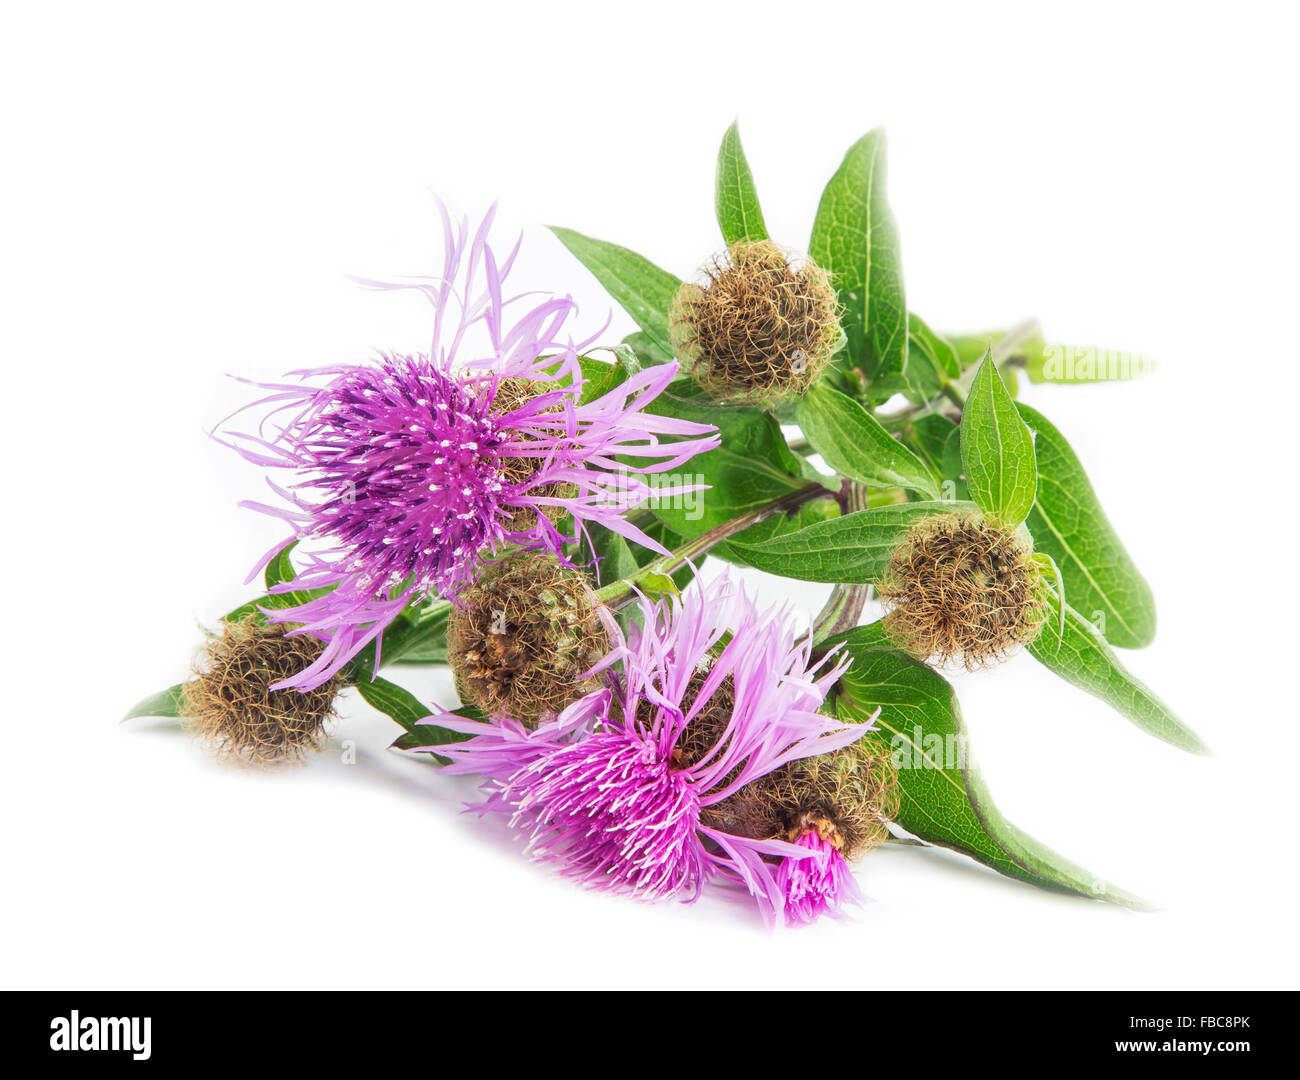 Spear Thistle (Cirsium vulgare) medicinal plant isolated on white - Stock Image